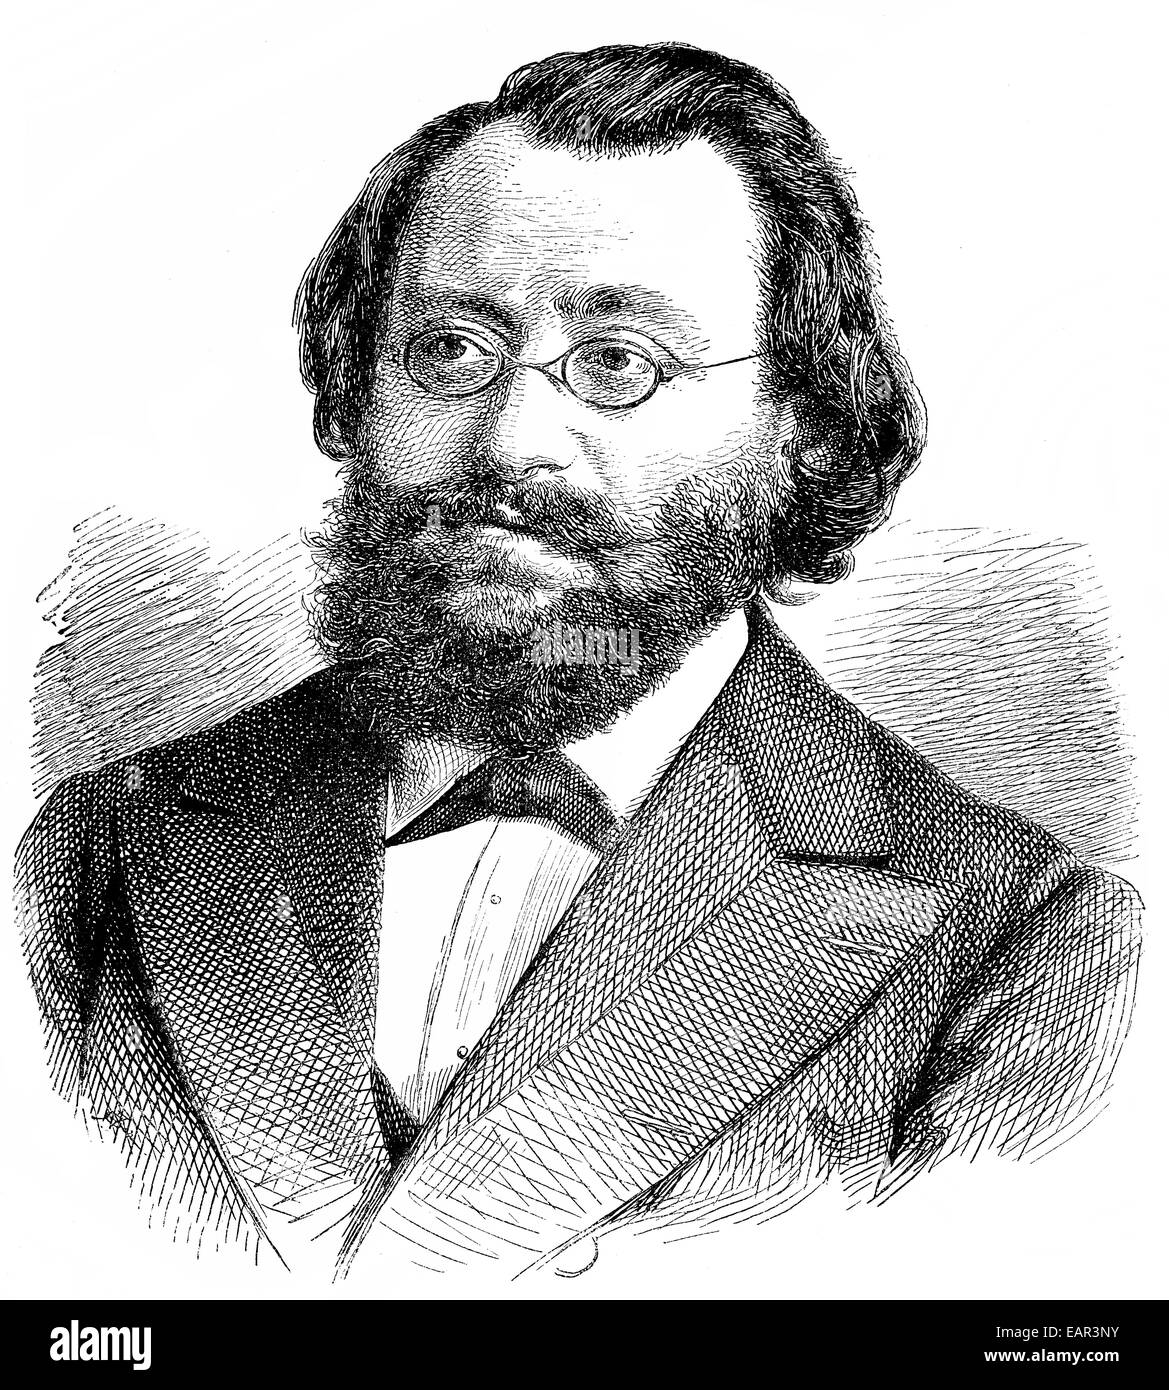 Max Christian Friedrich Bruch, 1838 - 1920, a German composer and conductor, Portrait von Max Christian Friedrich Stock Photo